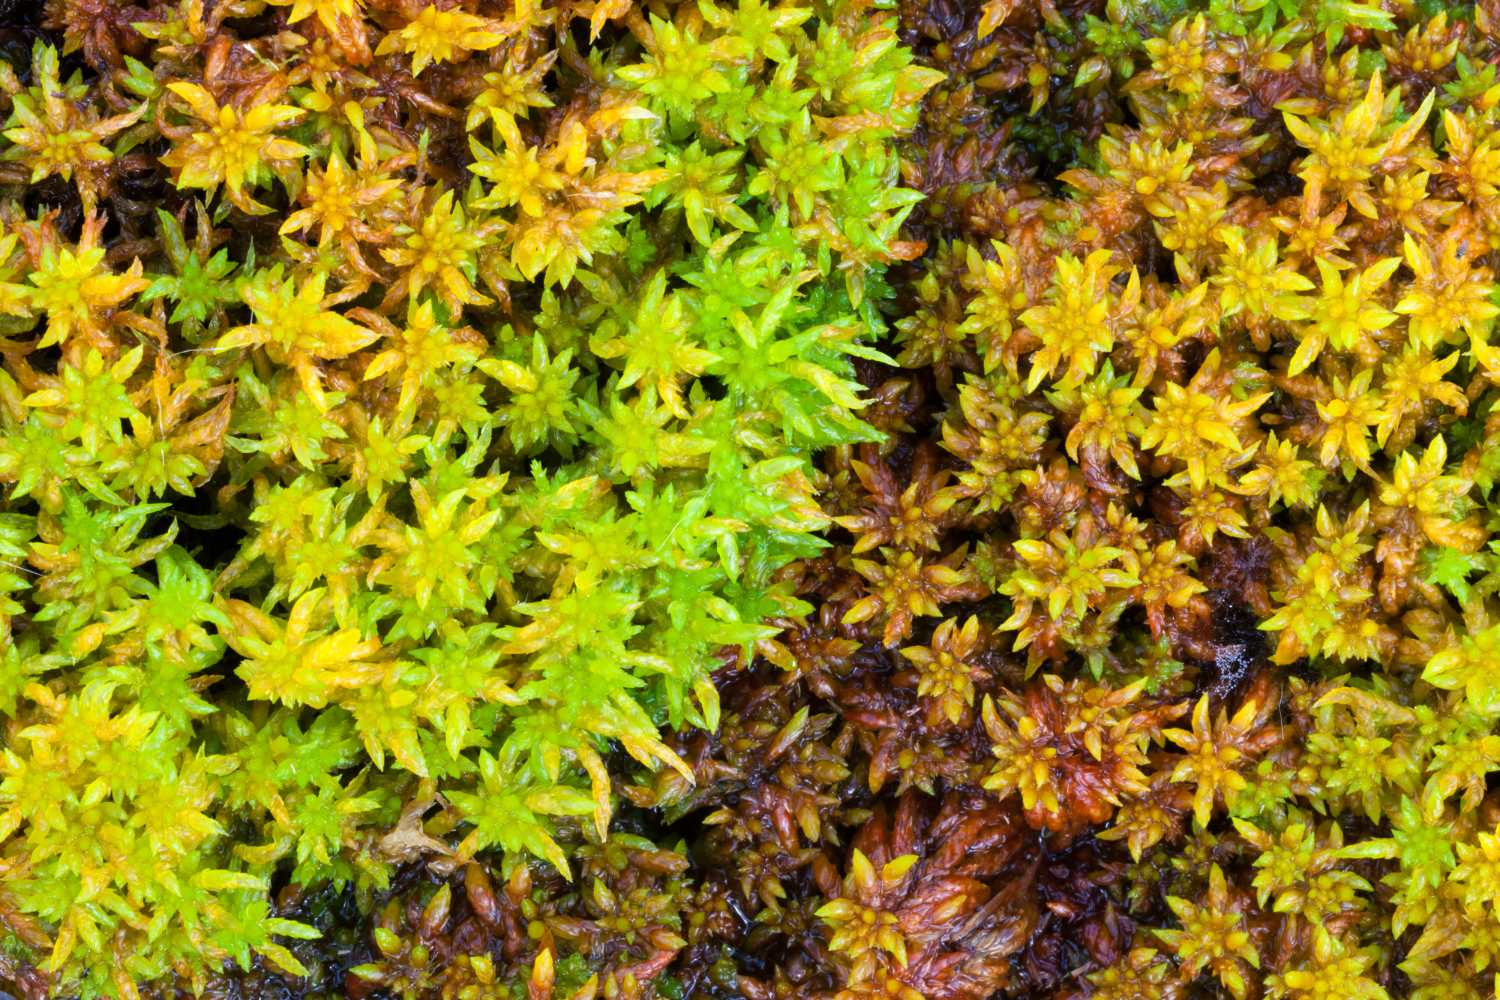 xSphagnum survey